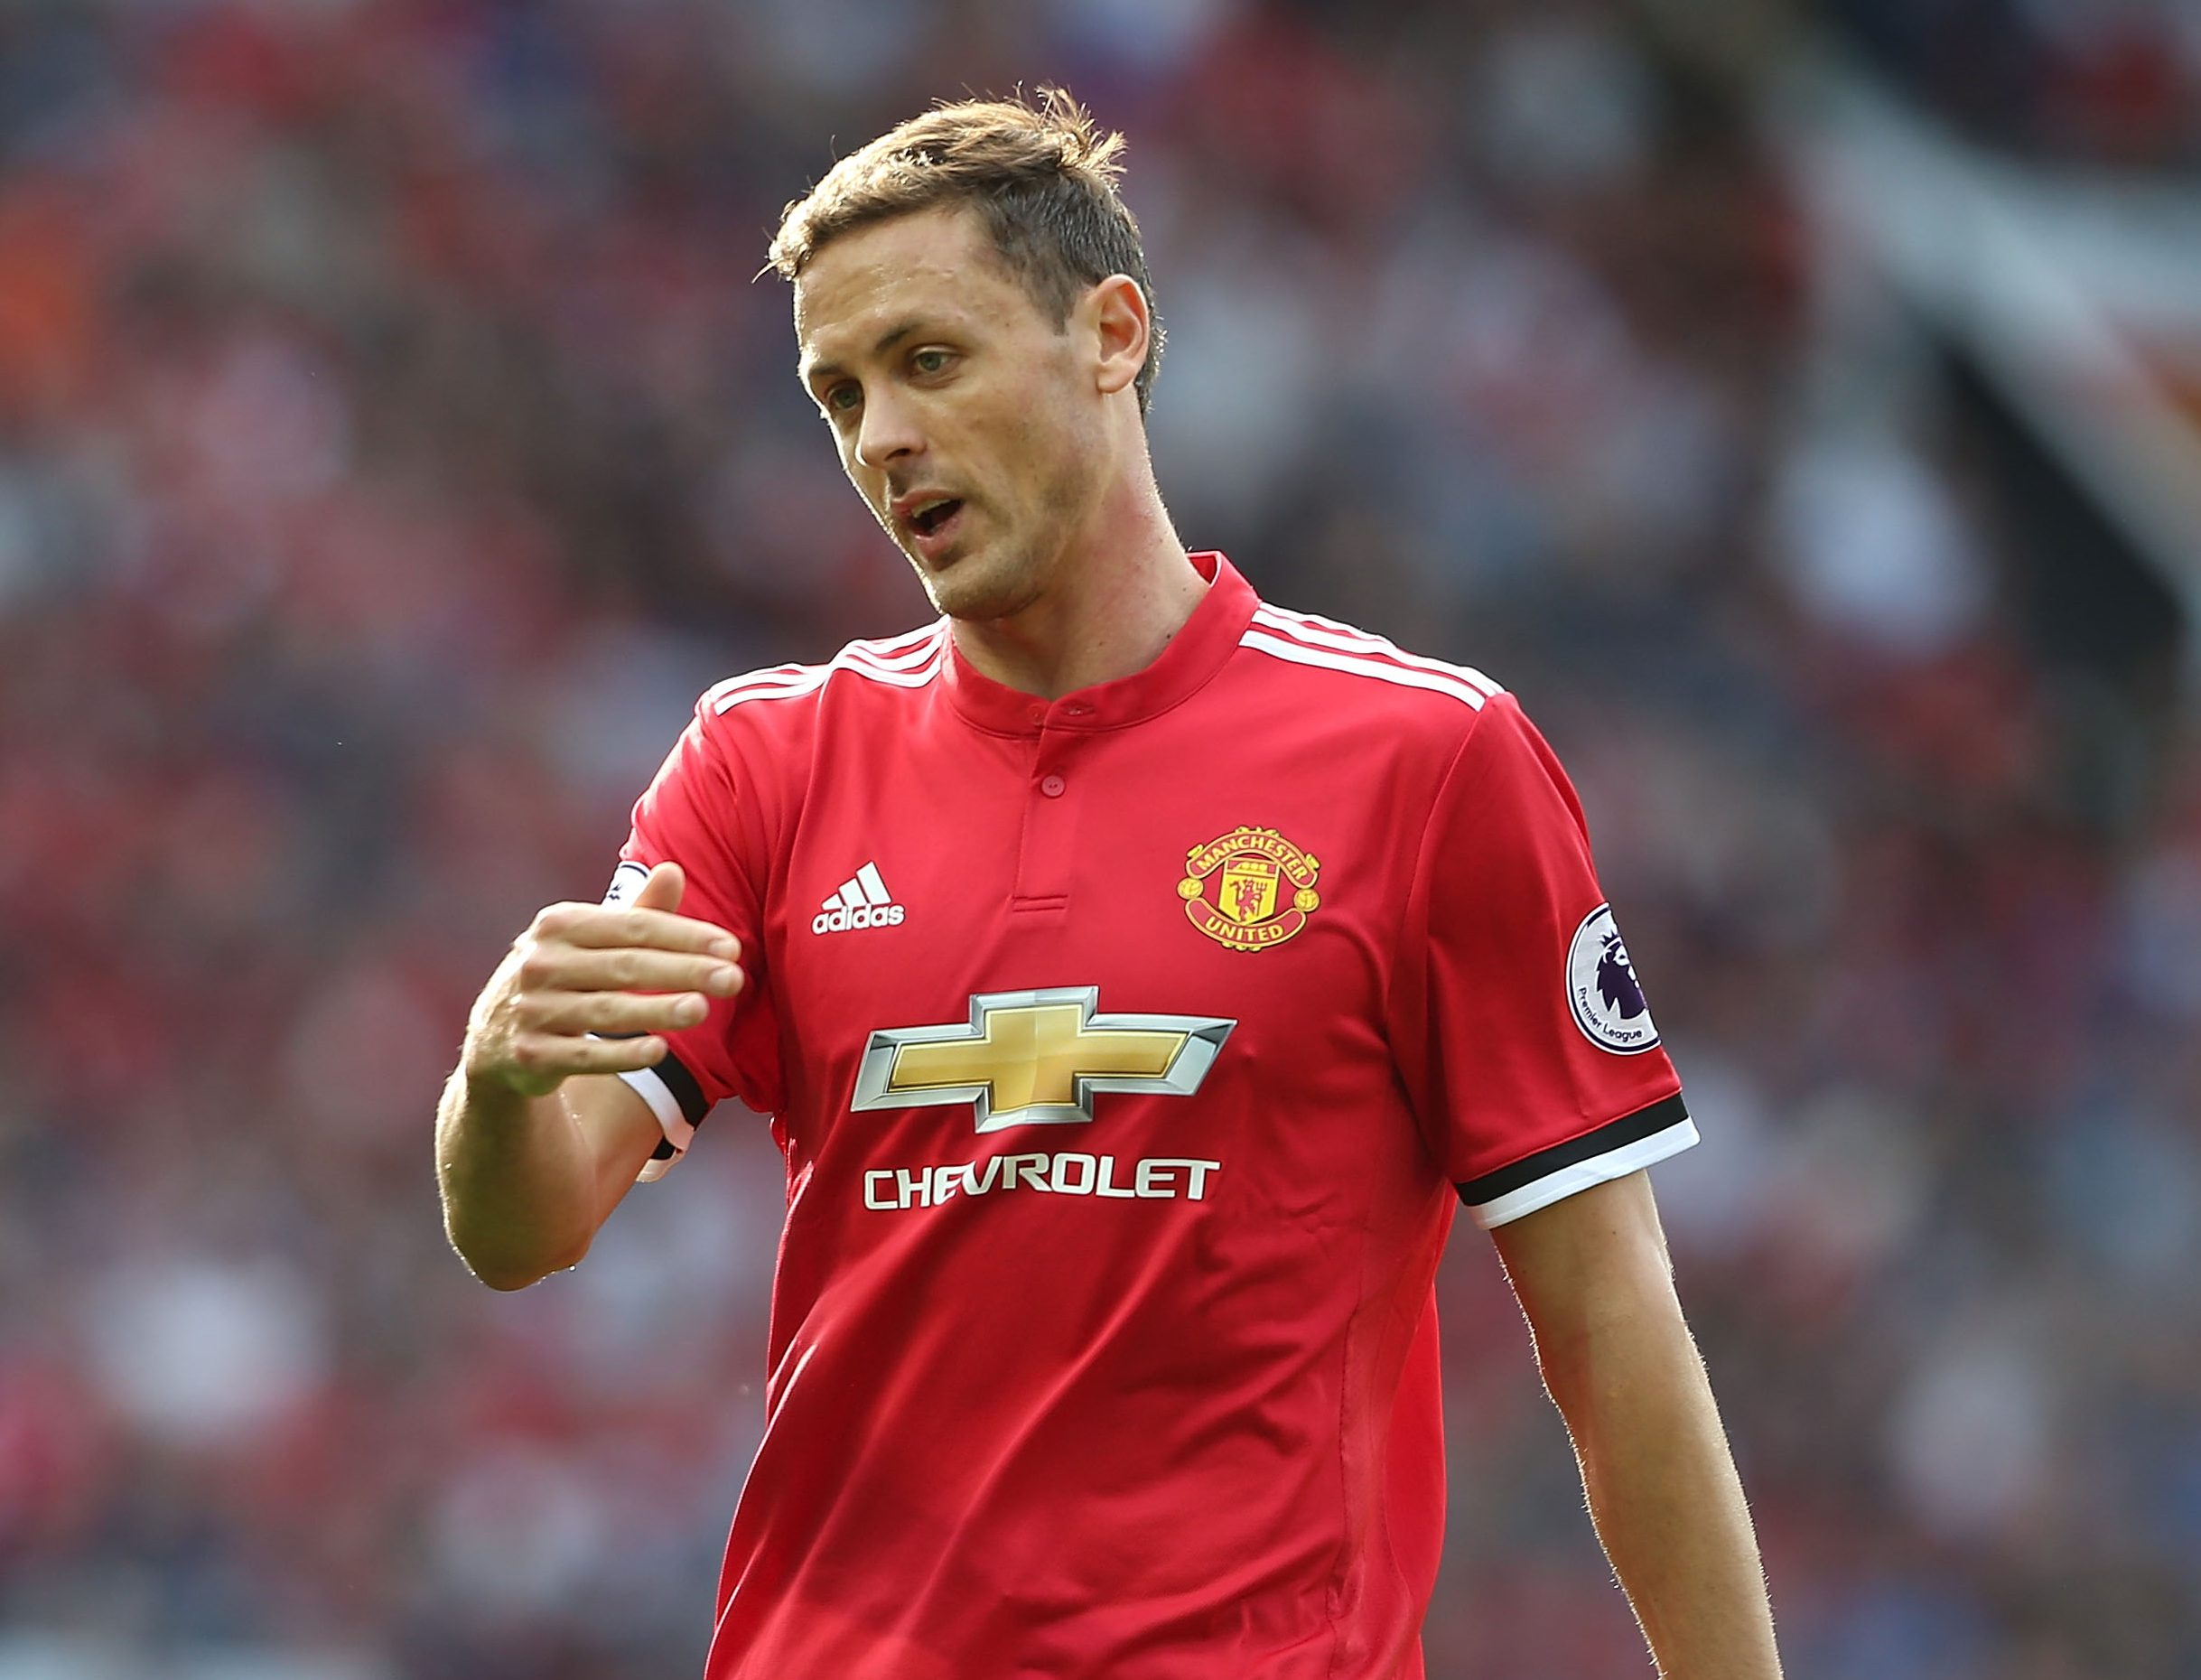 Chelsea allowing Nemanja Matic to join Man Utd was worst transfer business in history, says ex-coach Ray Wilkins